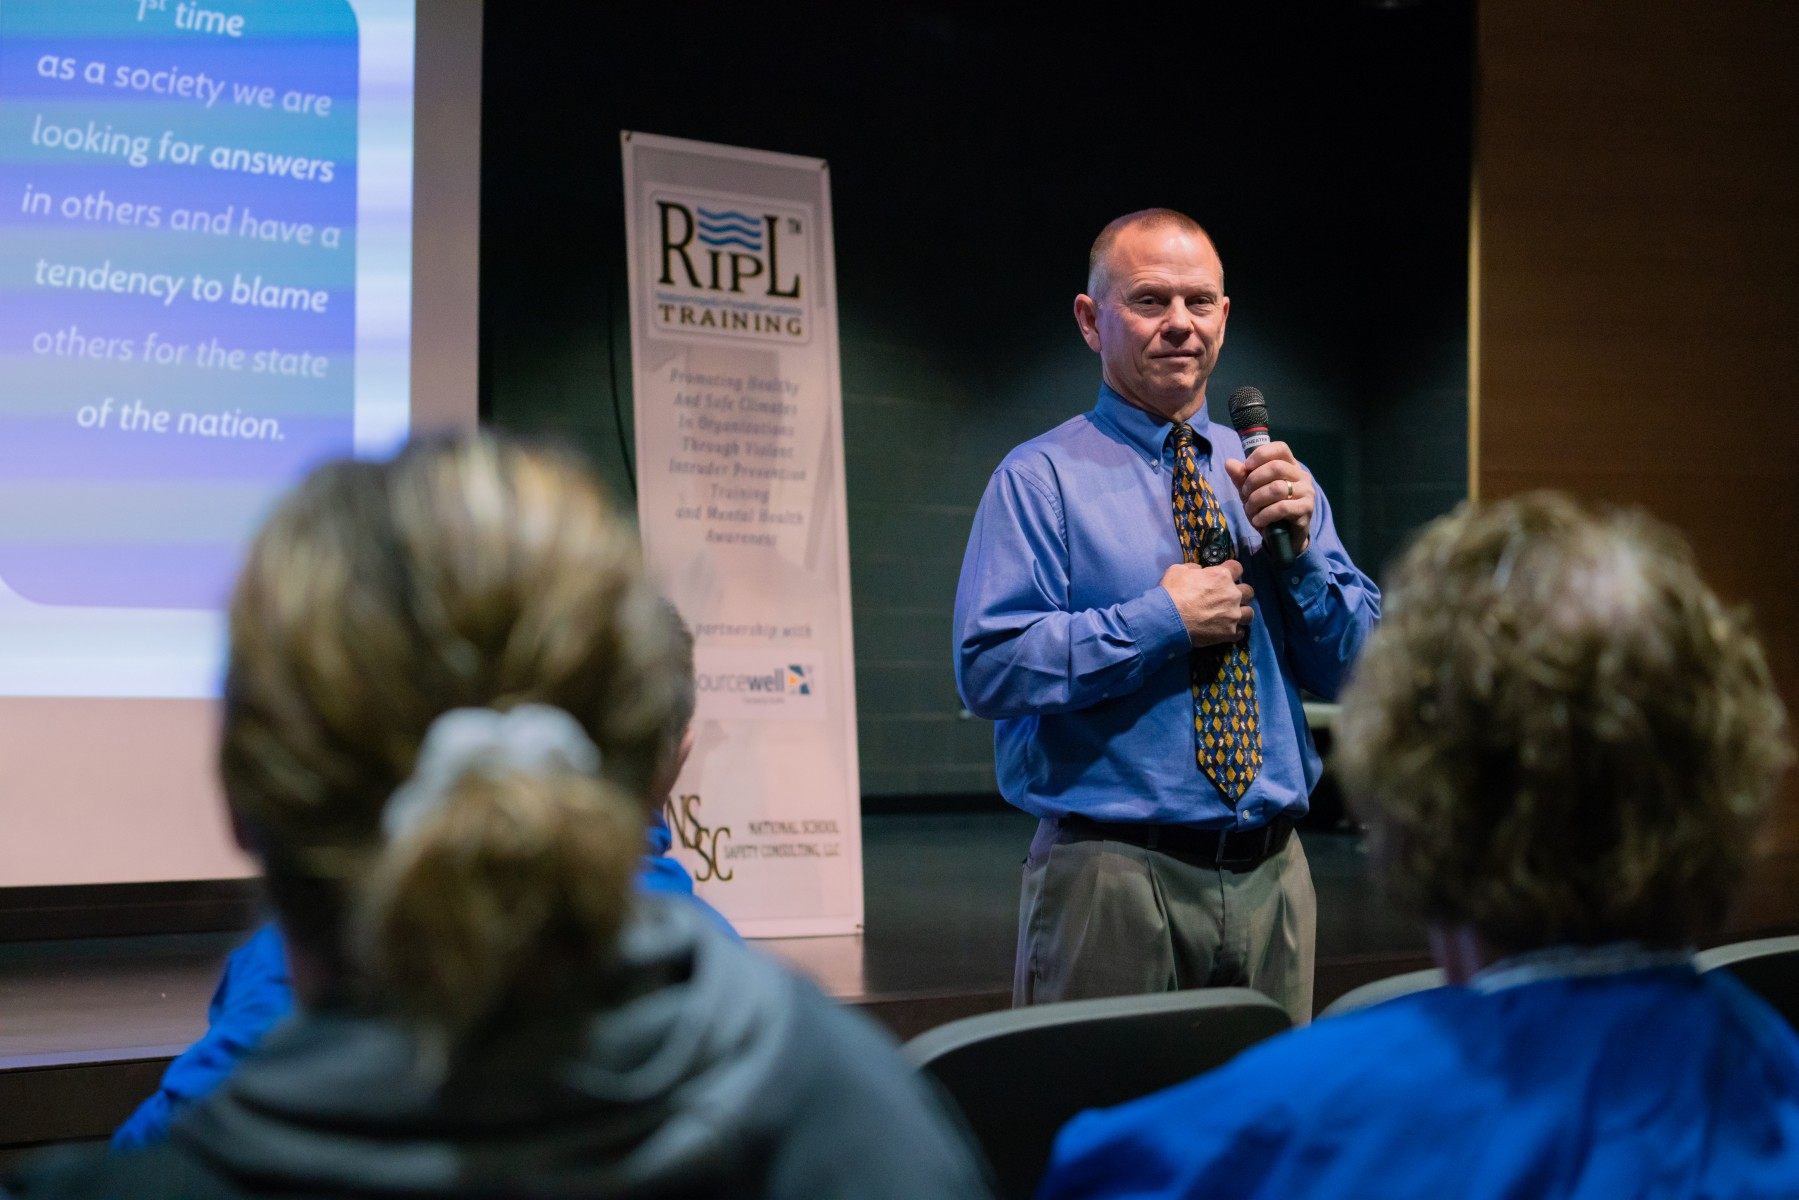 Scott Doss, former Pillager middle school principal and now co-owner of National School Safety Consulting, presents RIPL training for educators in the Wadena-Deer Creek School District.